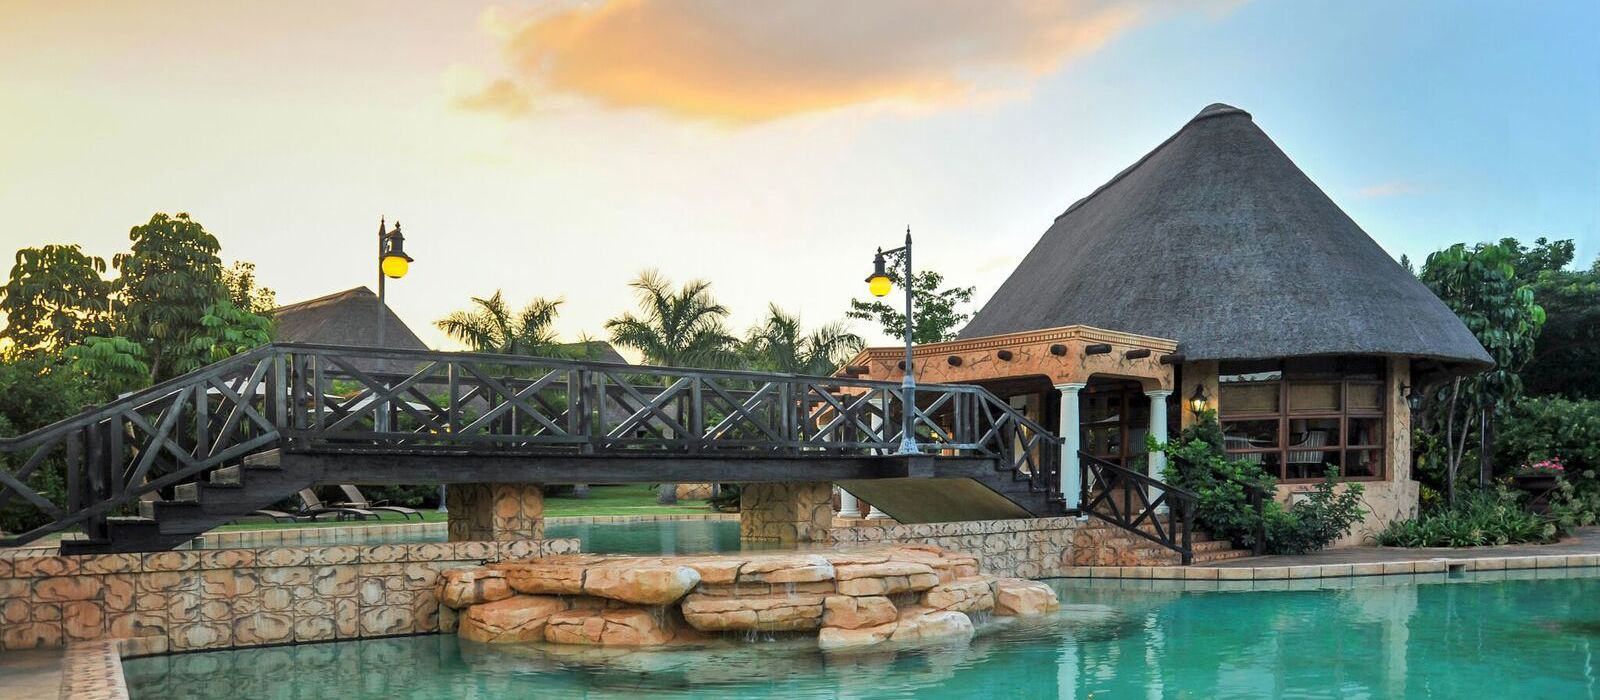 Hotel Summerfield Luxury  & Botanical Garden Swaziland